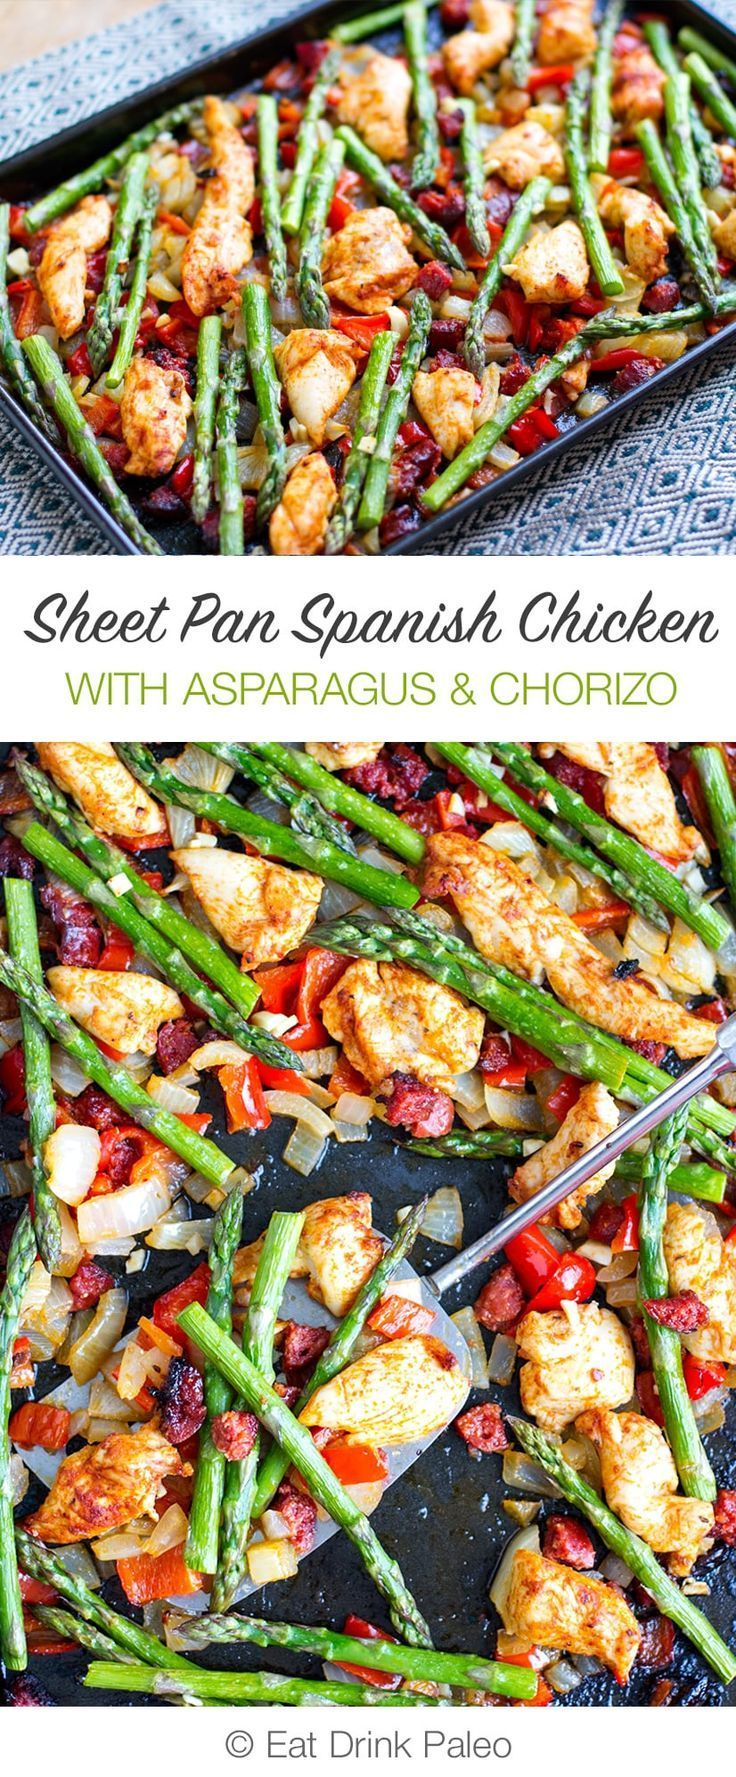 Sheet Pan Roasted Asparagus and Chicken With Chorizo